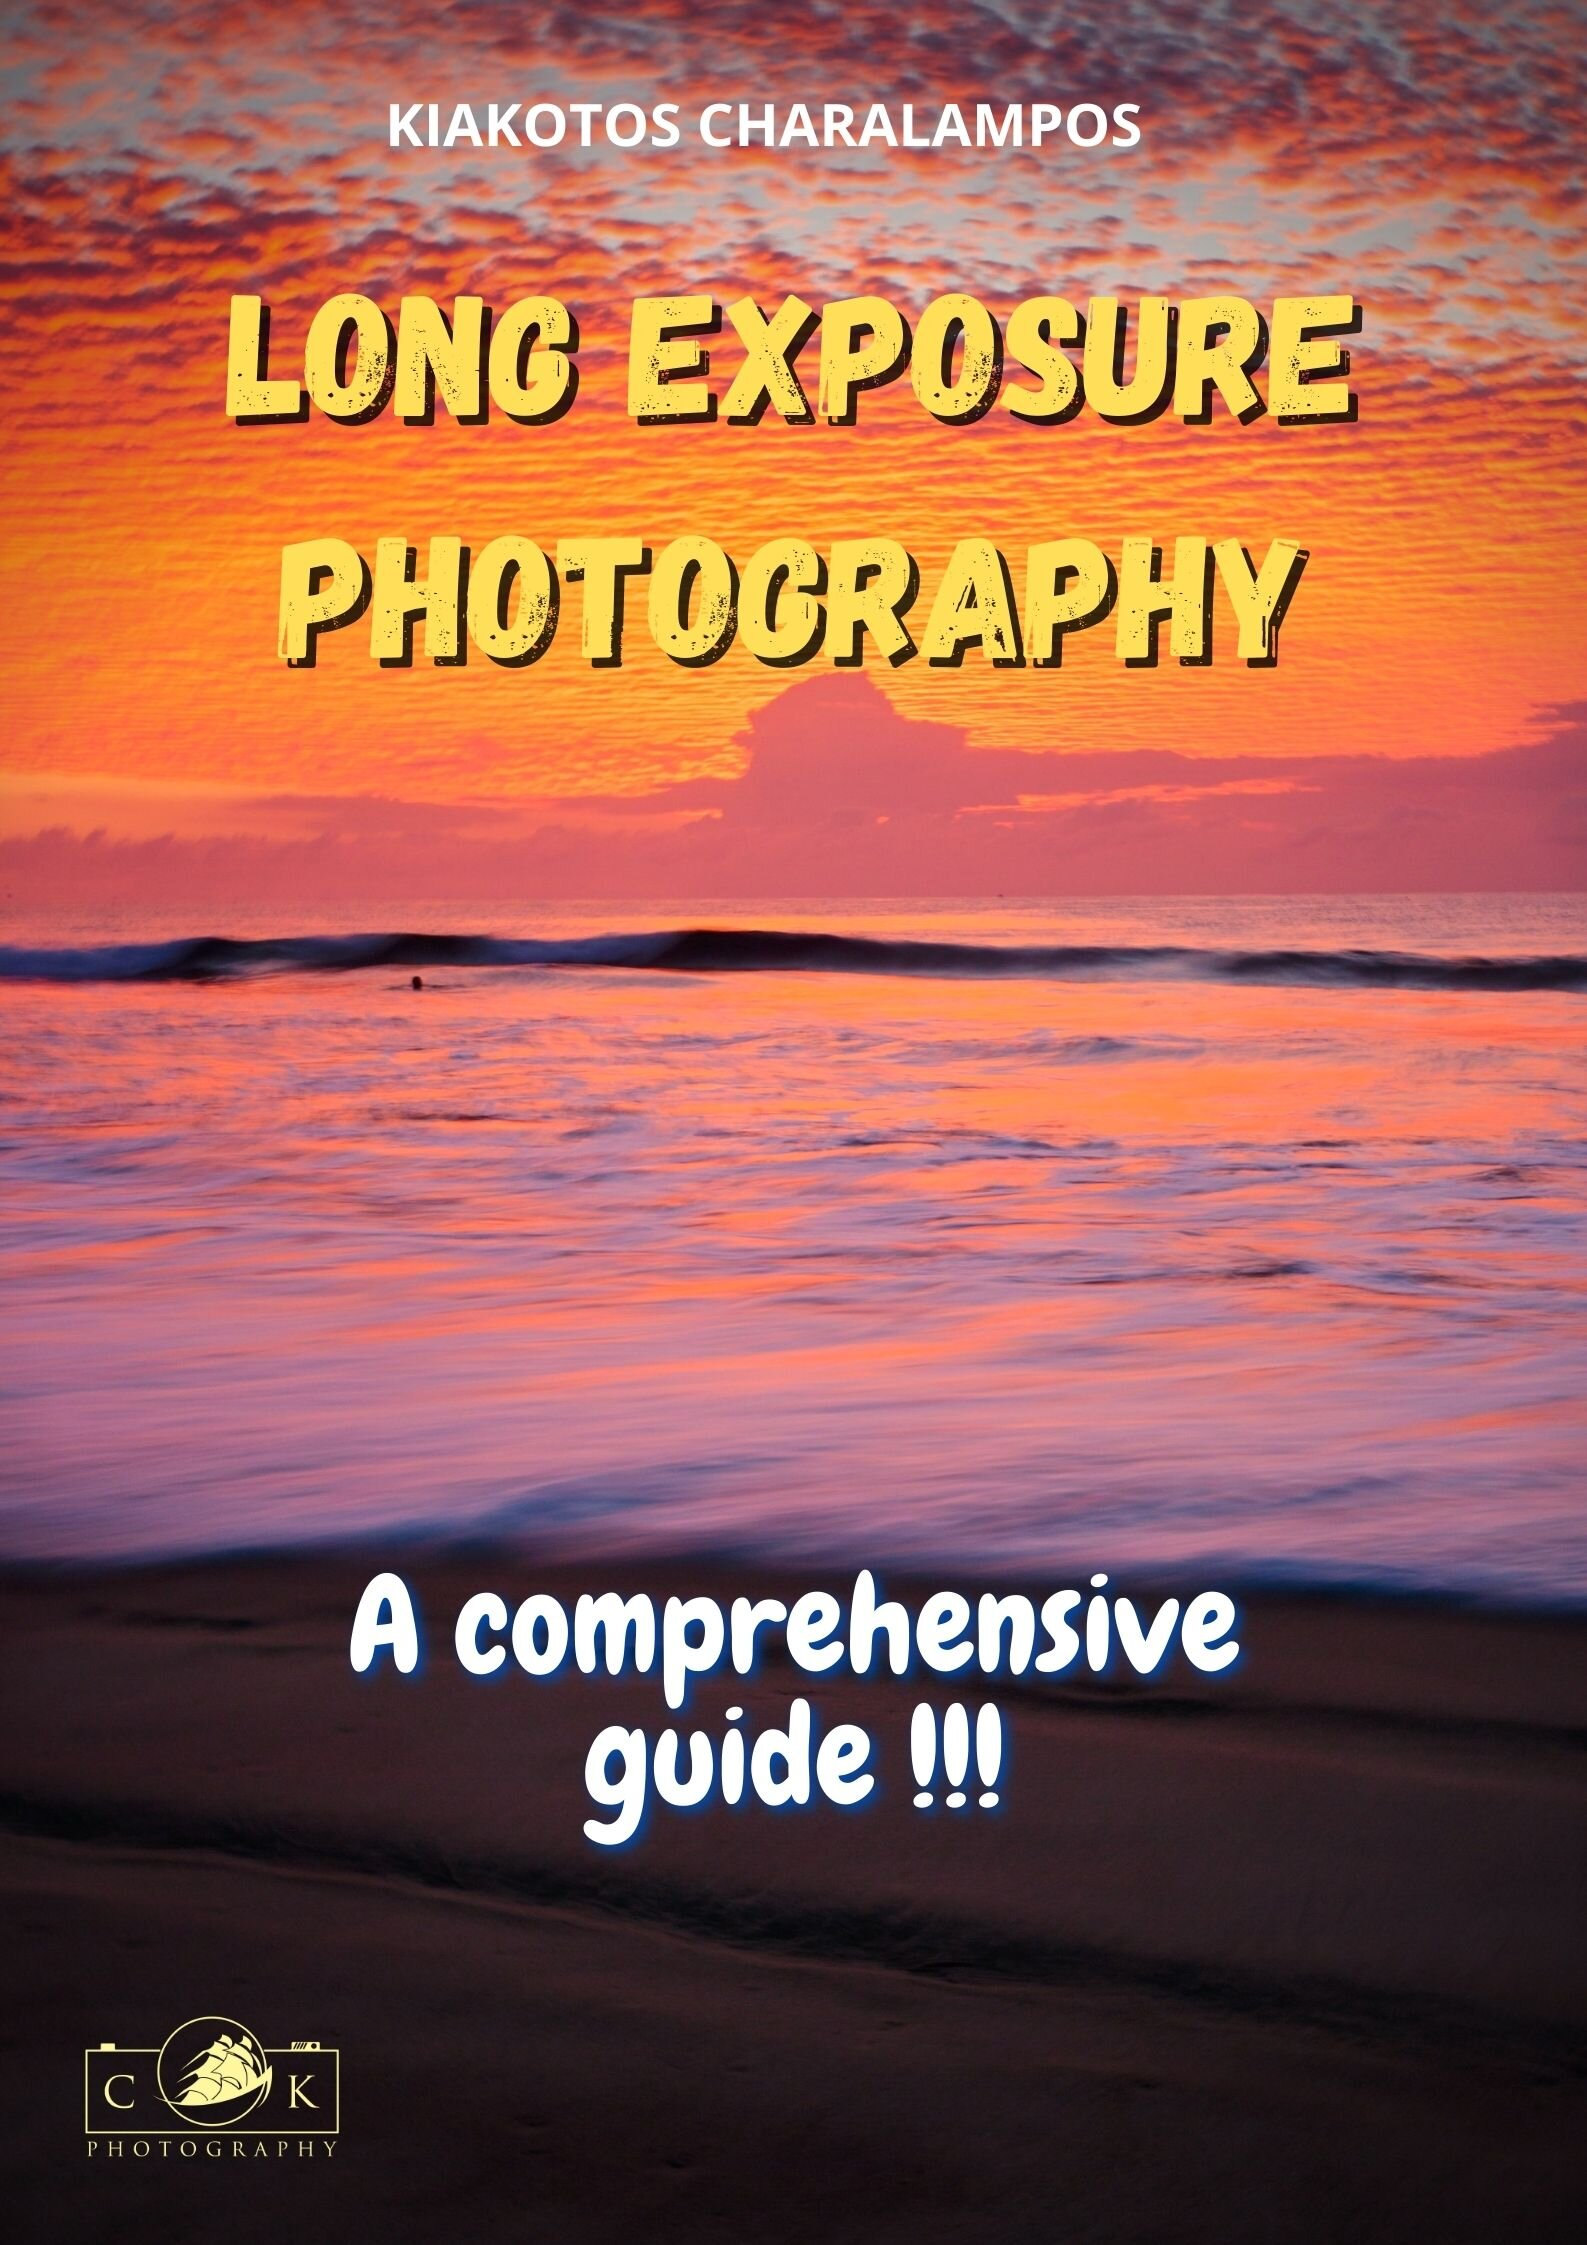 Long Exposure Photography Guide Poster   Photographers Blog